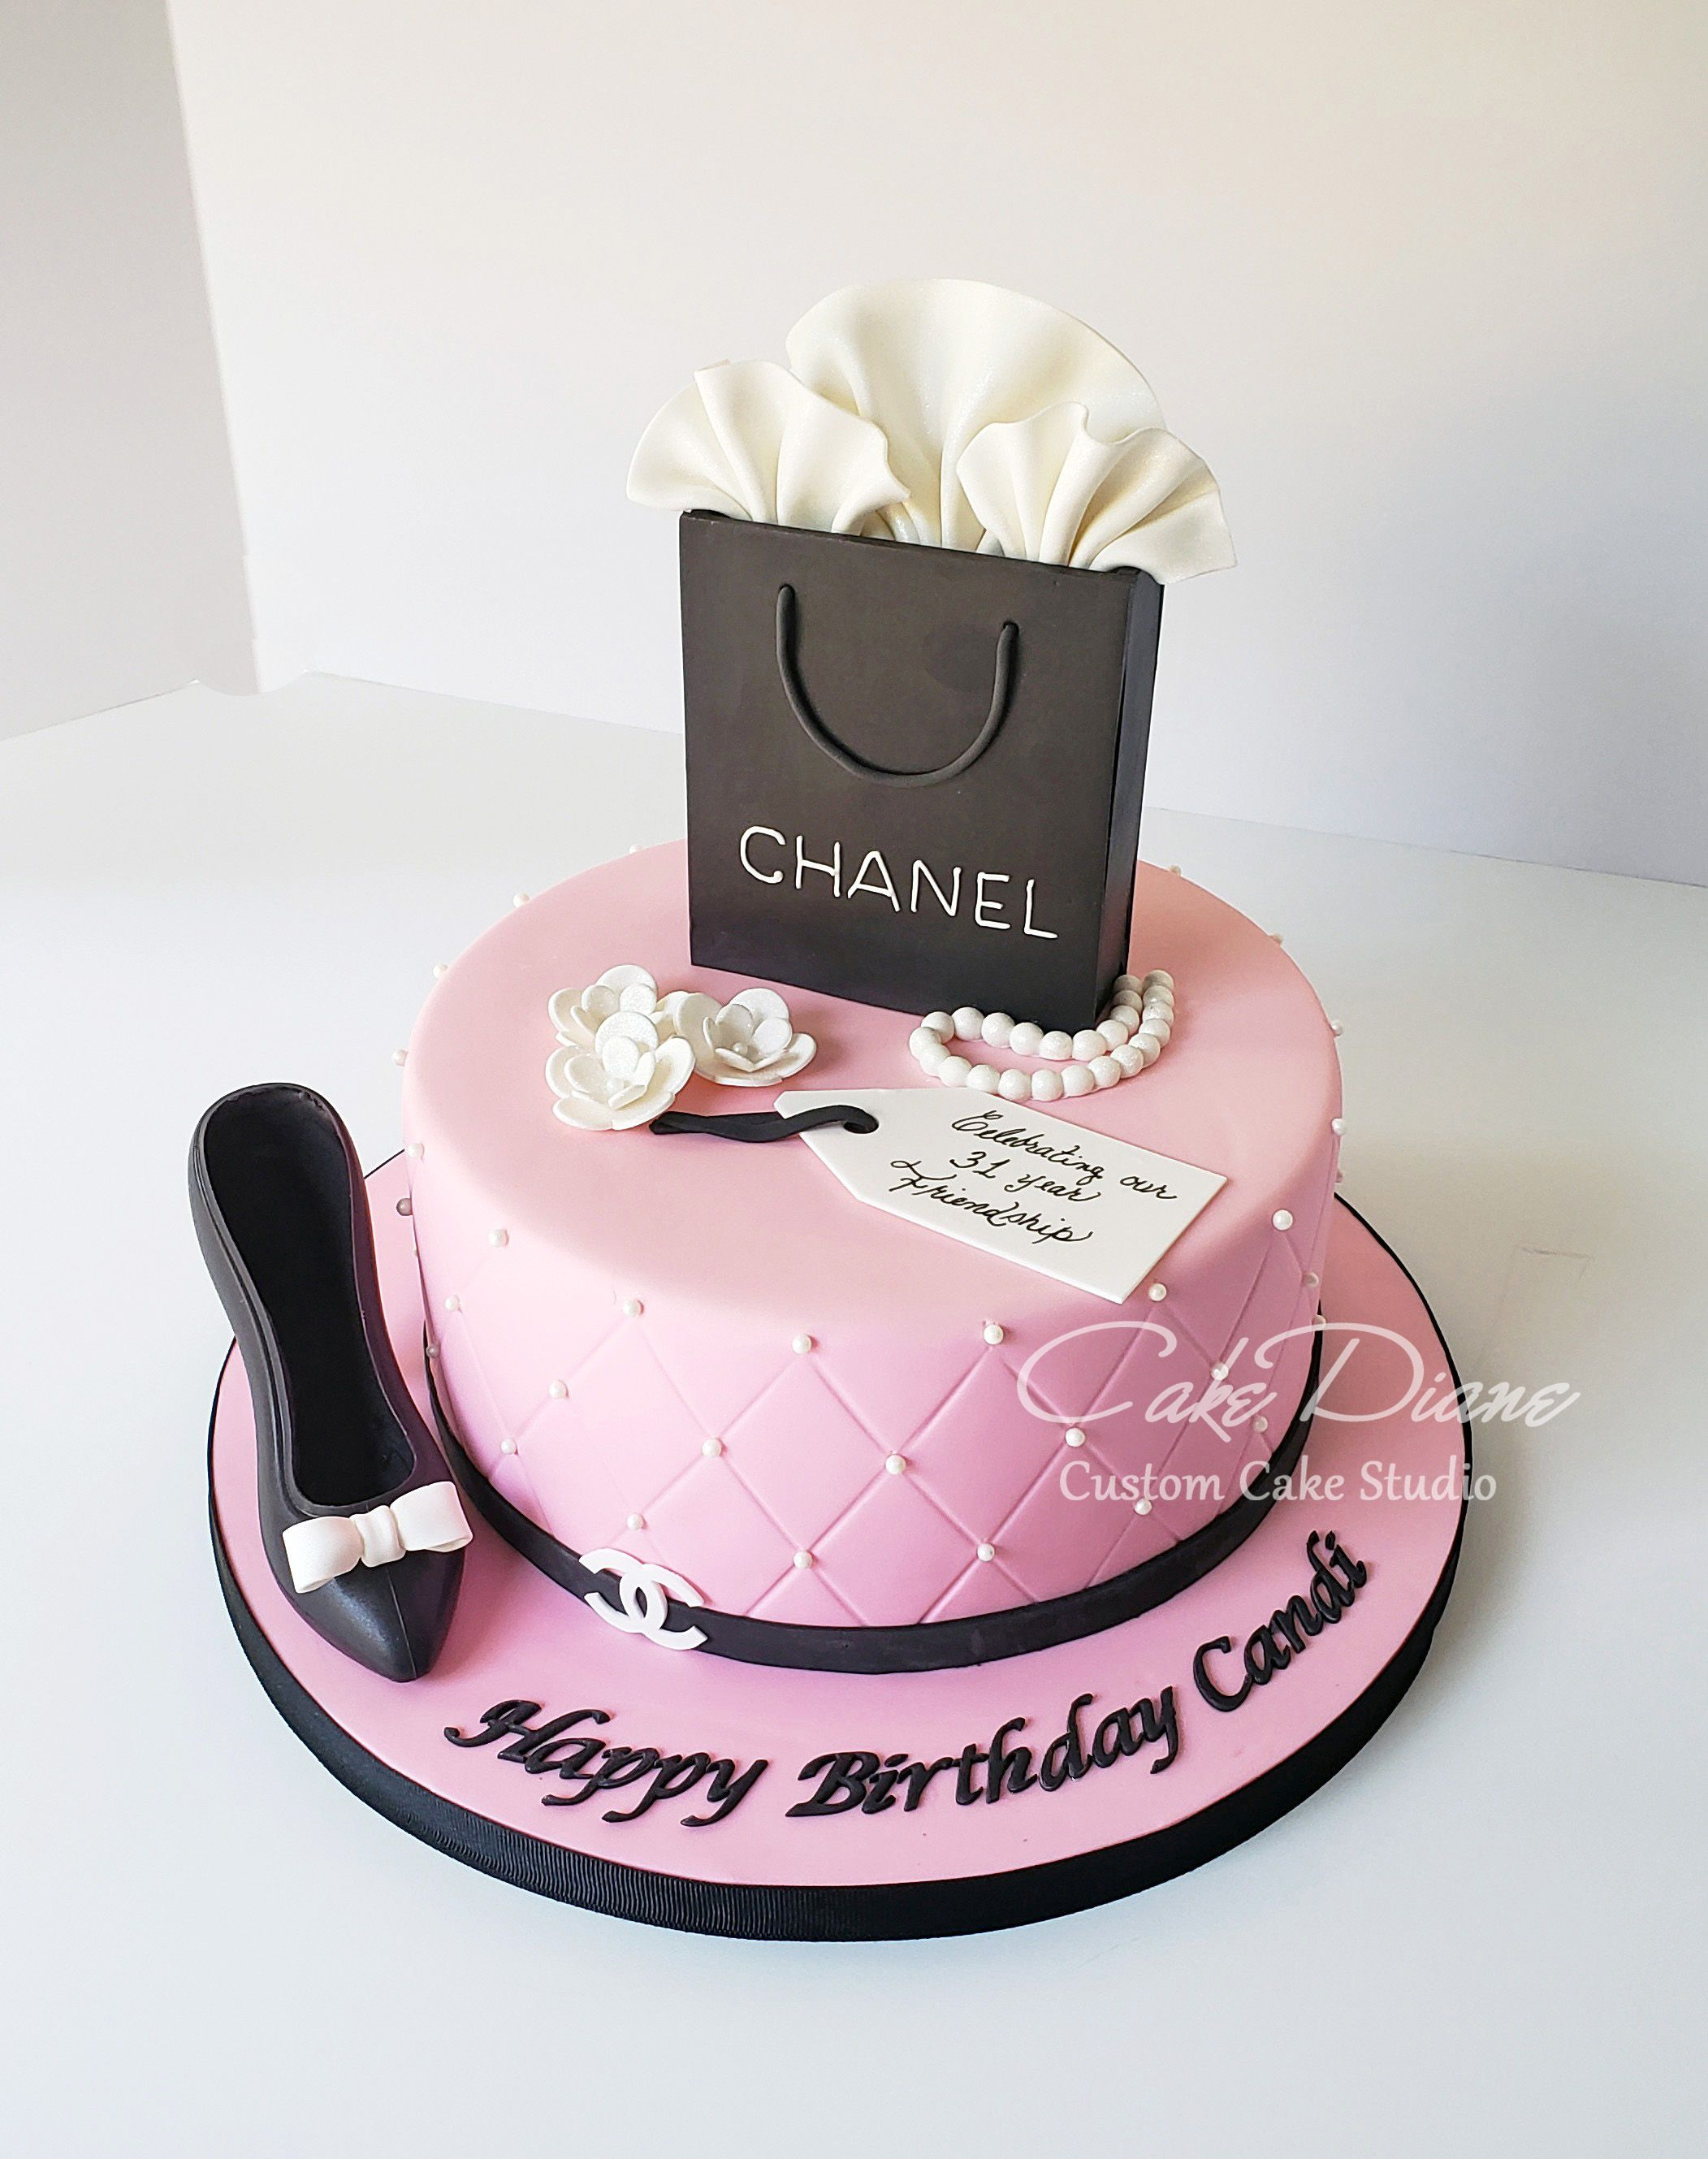 Wondrous Chanel Theme Birthday Cake All Edible Including Chocolate Shoe Personalised Birthday Cards Beptaeletsinfo